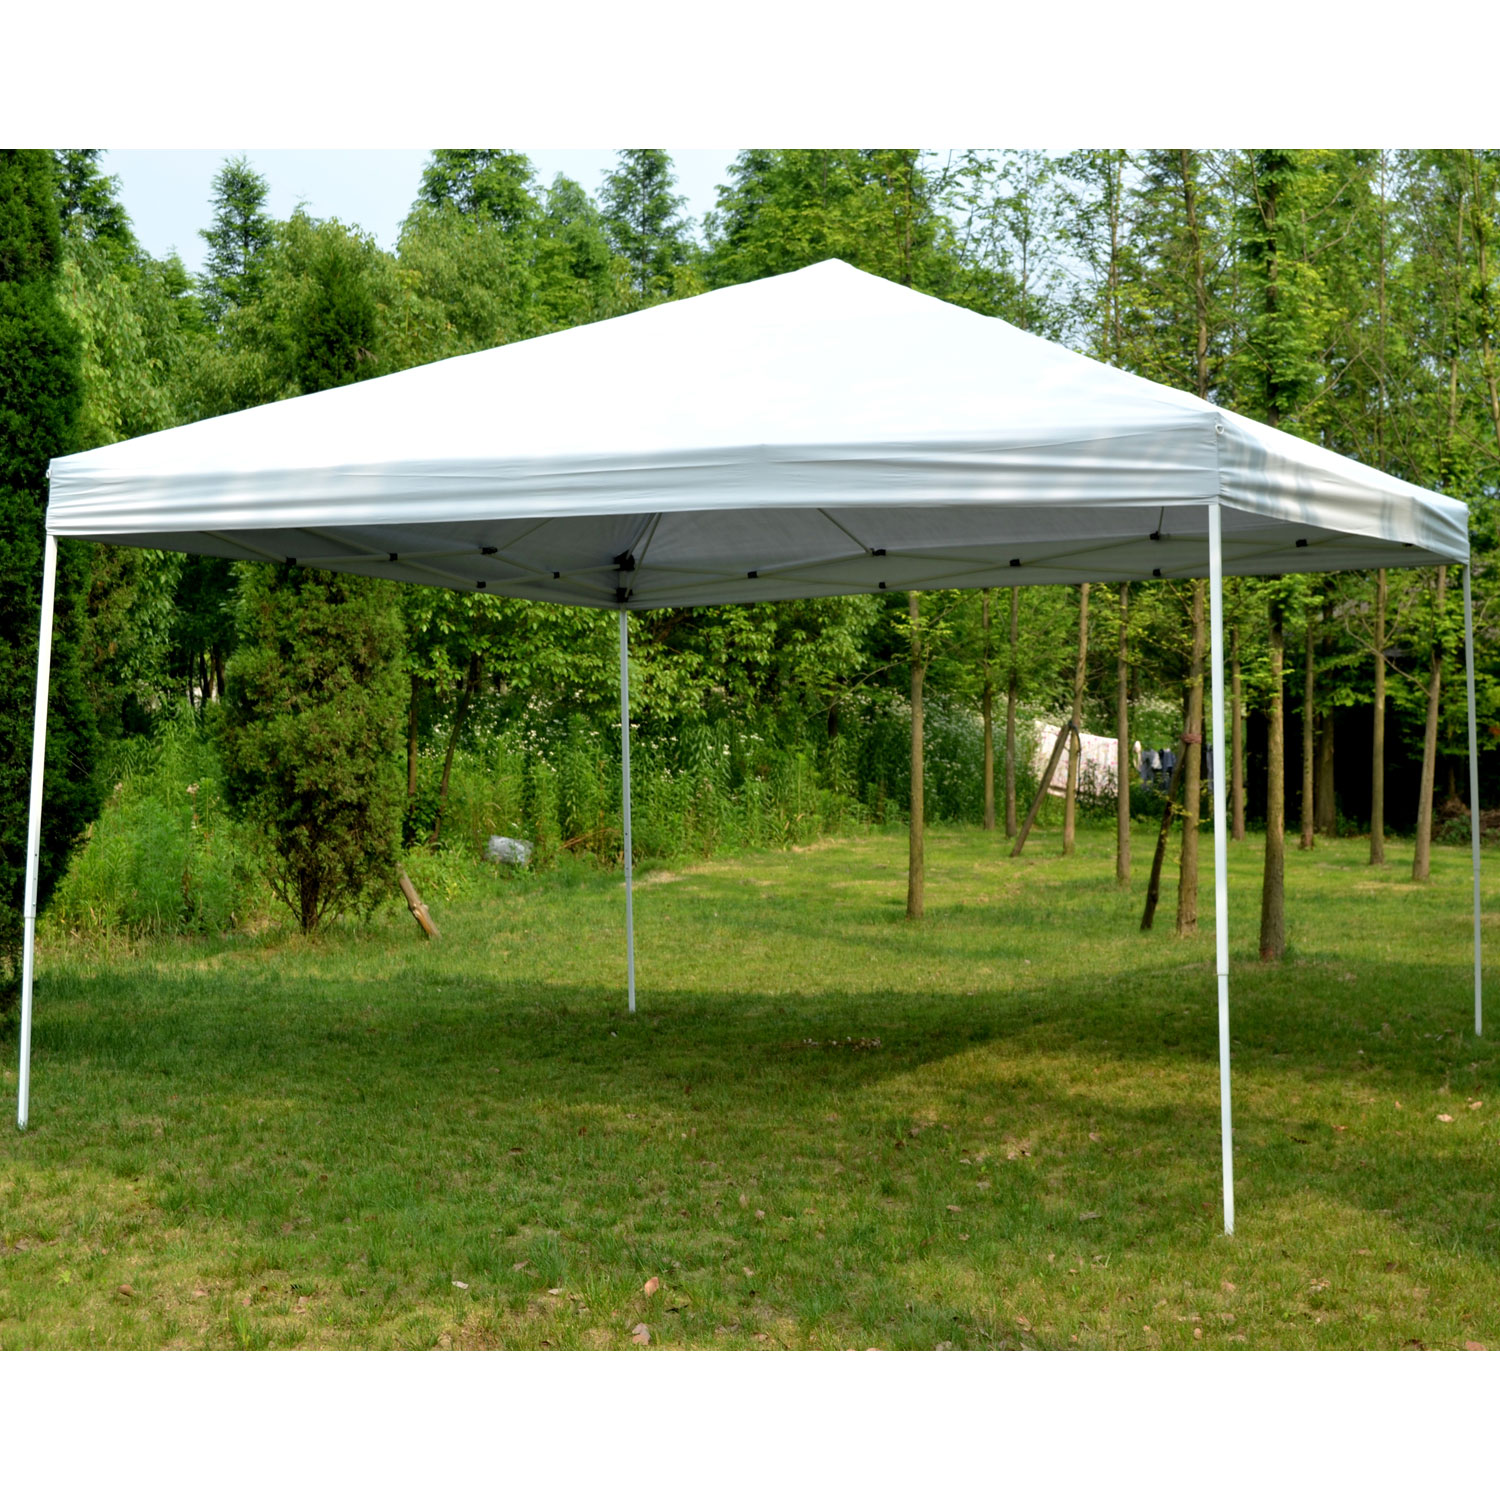 Outsunny 13' x 13' Easy Canopy Pop Up Tent - Light Gray